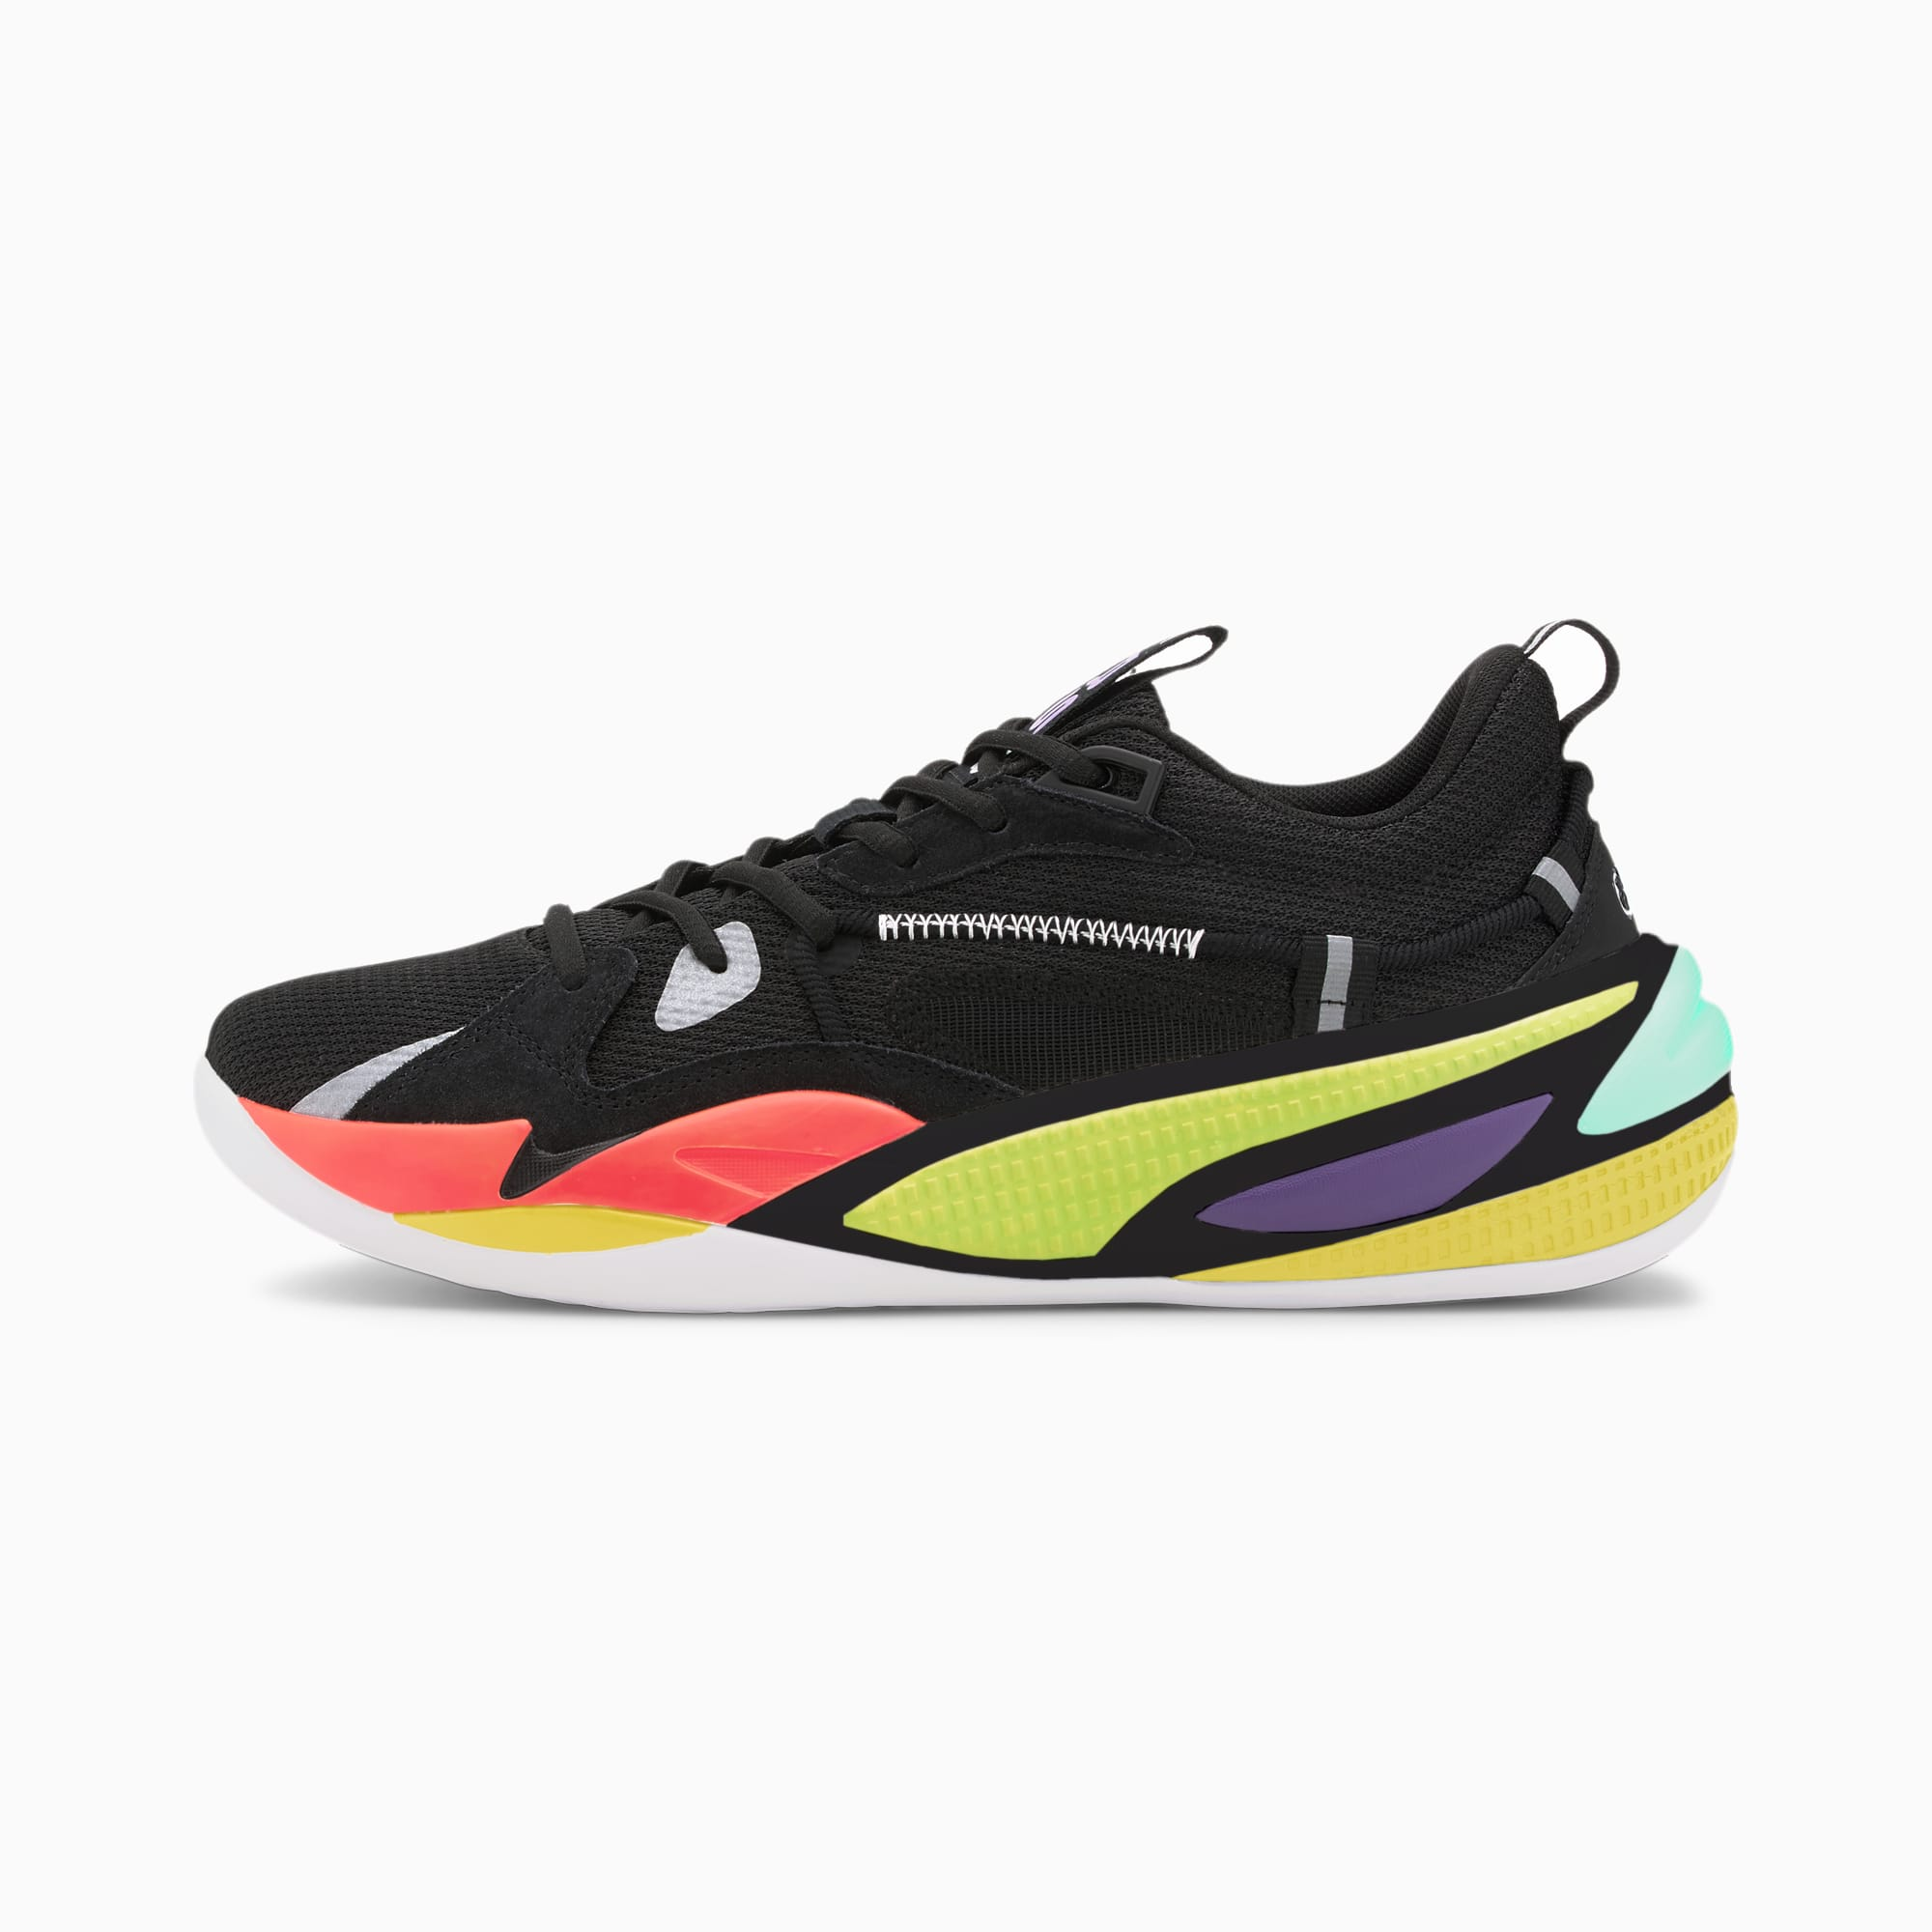 RS-Dreamer Basketball Shoes